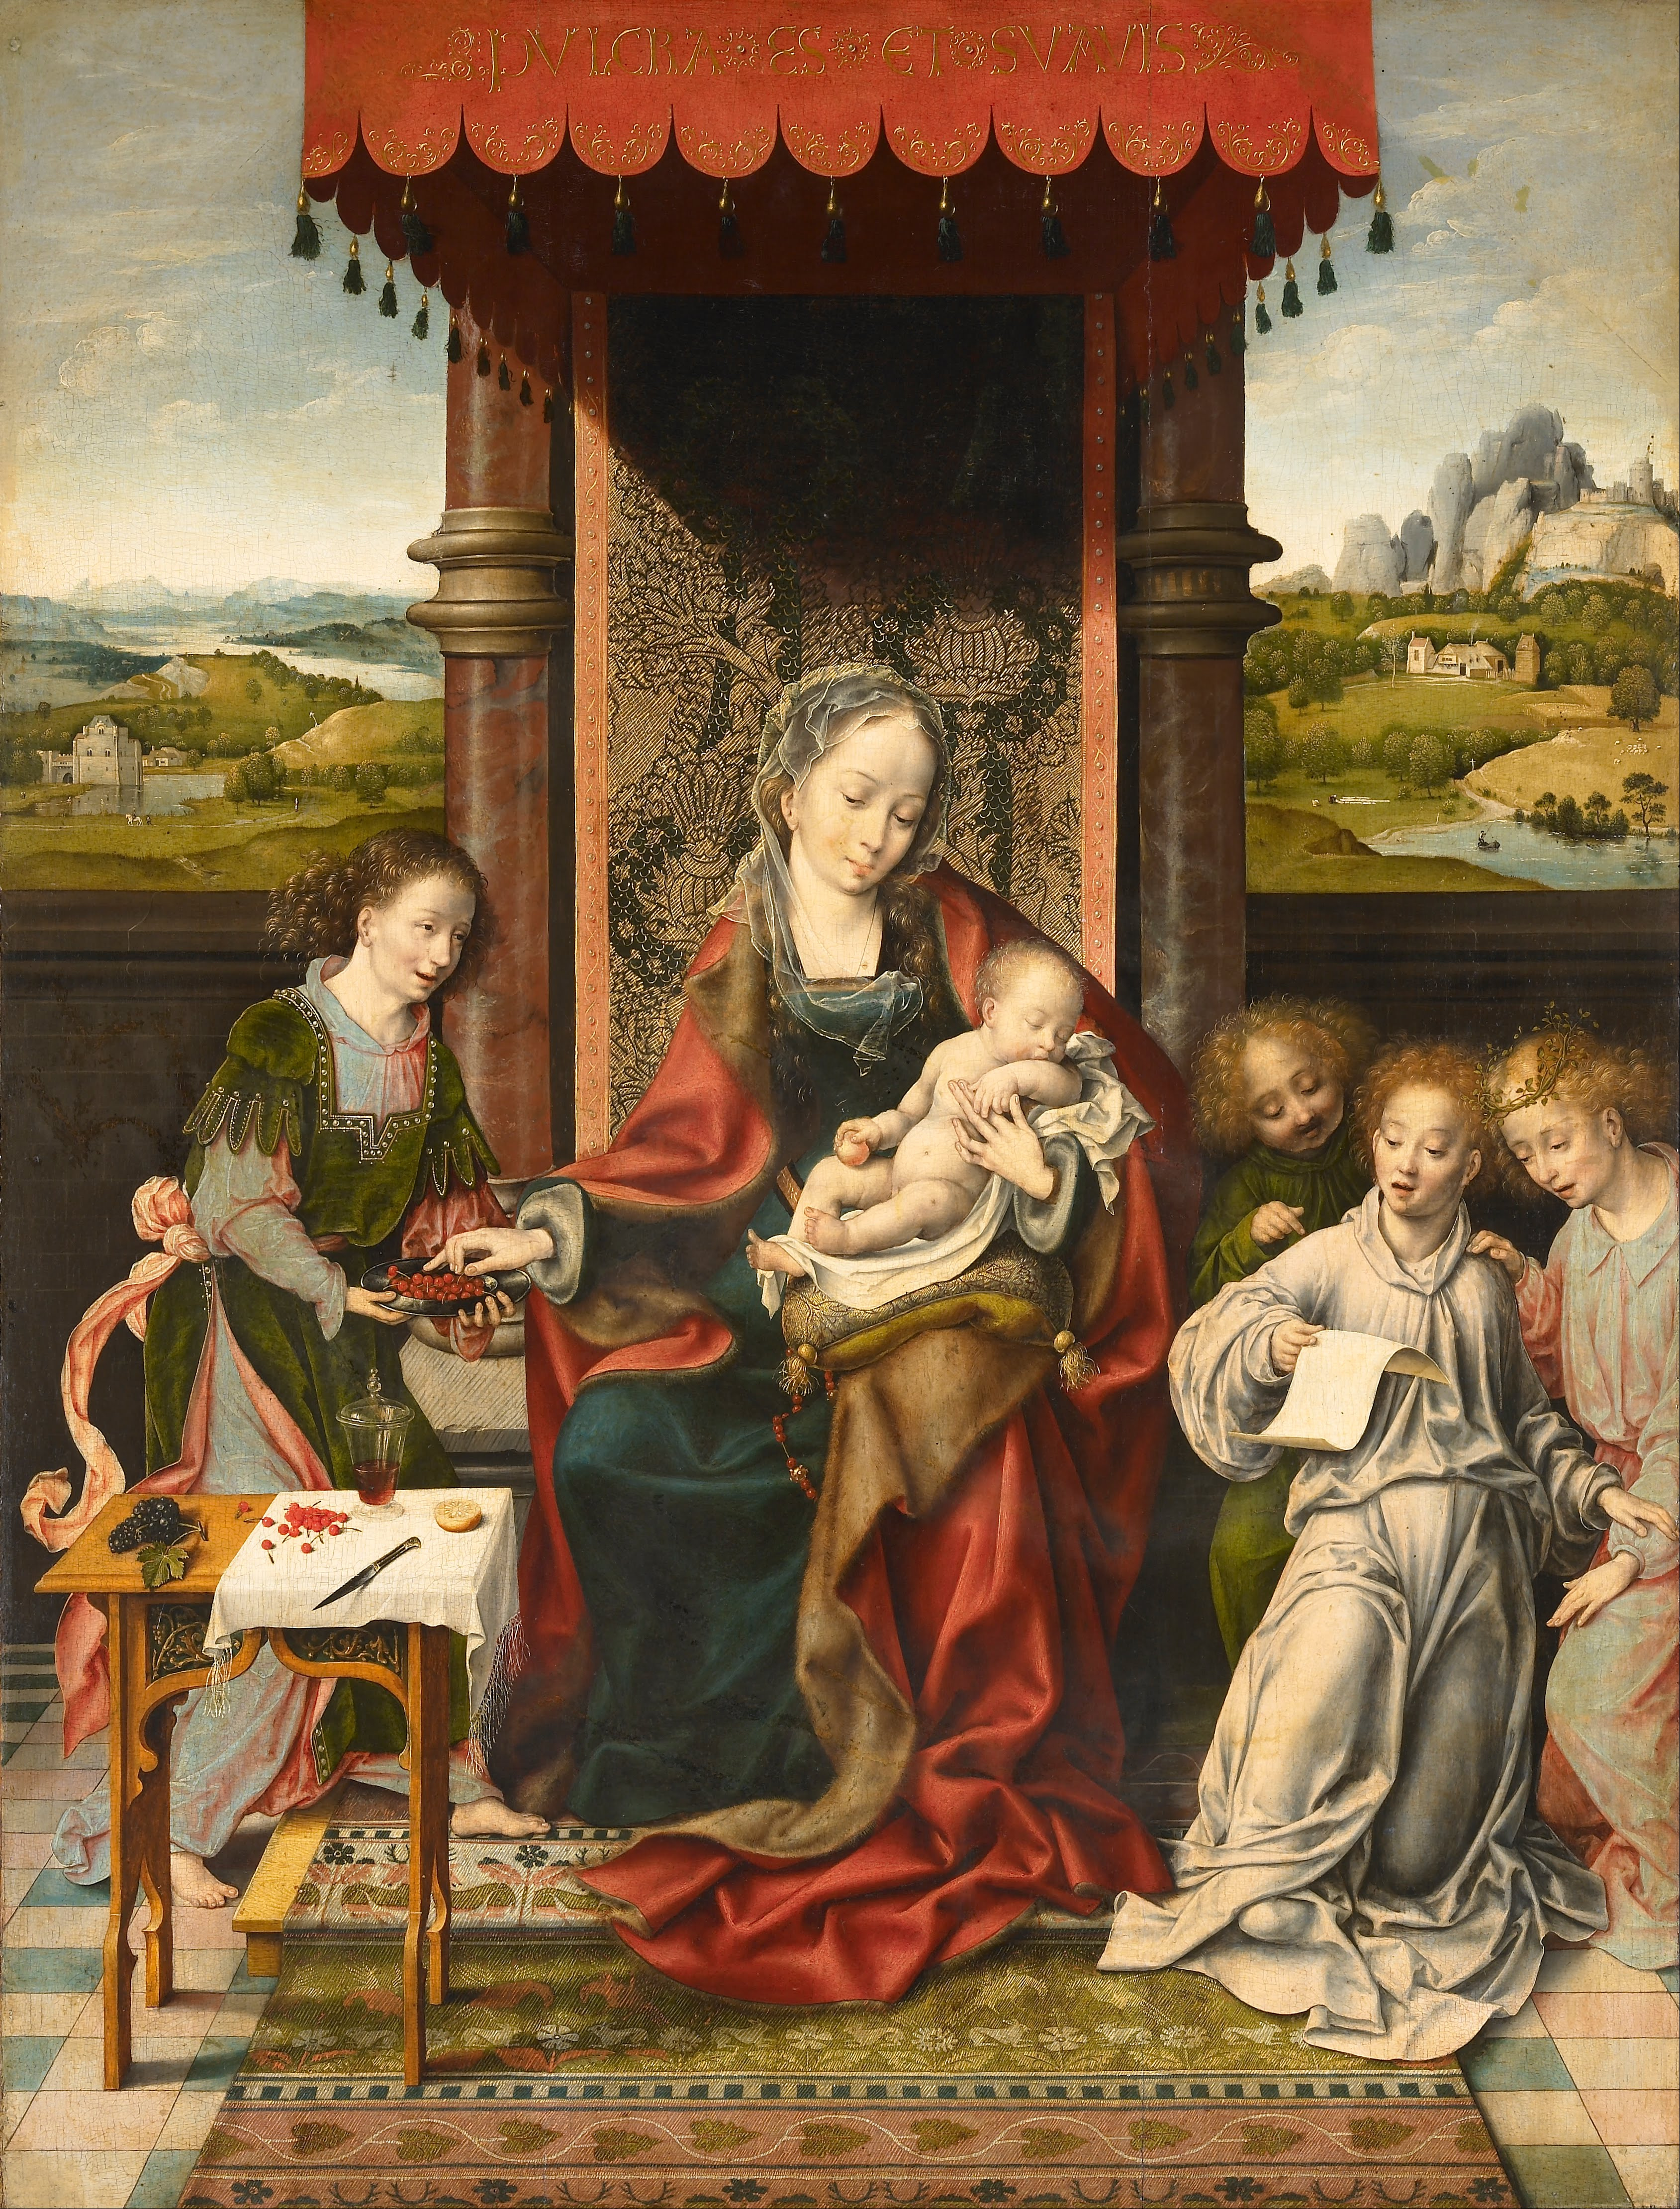 Joos_van_Cleve_-_Virgin_and_Child_with_Angels_-_Google_Art_Project